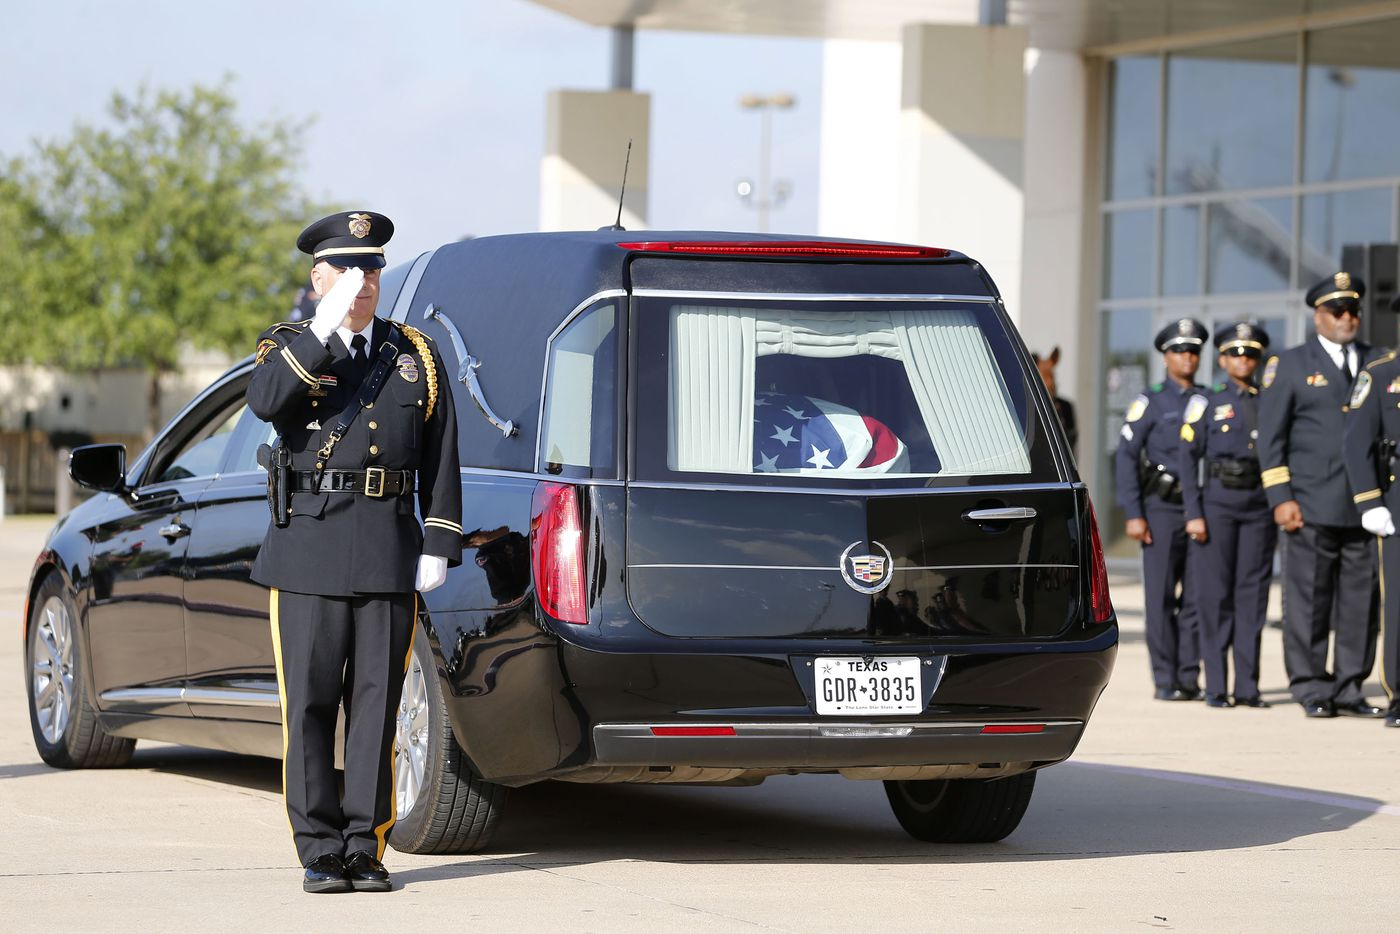 An officer salutes as a hearse arrives carrying DART Officer Brent Thompson in preparation for a memorial service at The Potter's House in Dallas on Wednesday, July 13, 2016. Thompson was one of five officers killed last week when a gunman opened fire during a Black Lives Matter rally in downtown Dallas.